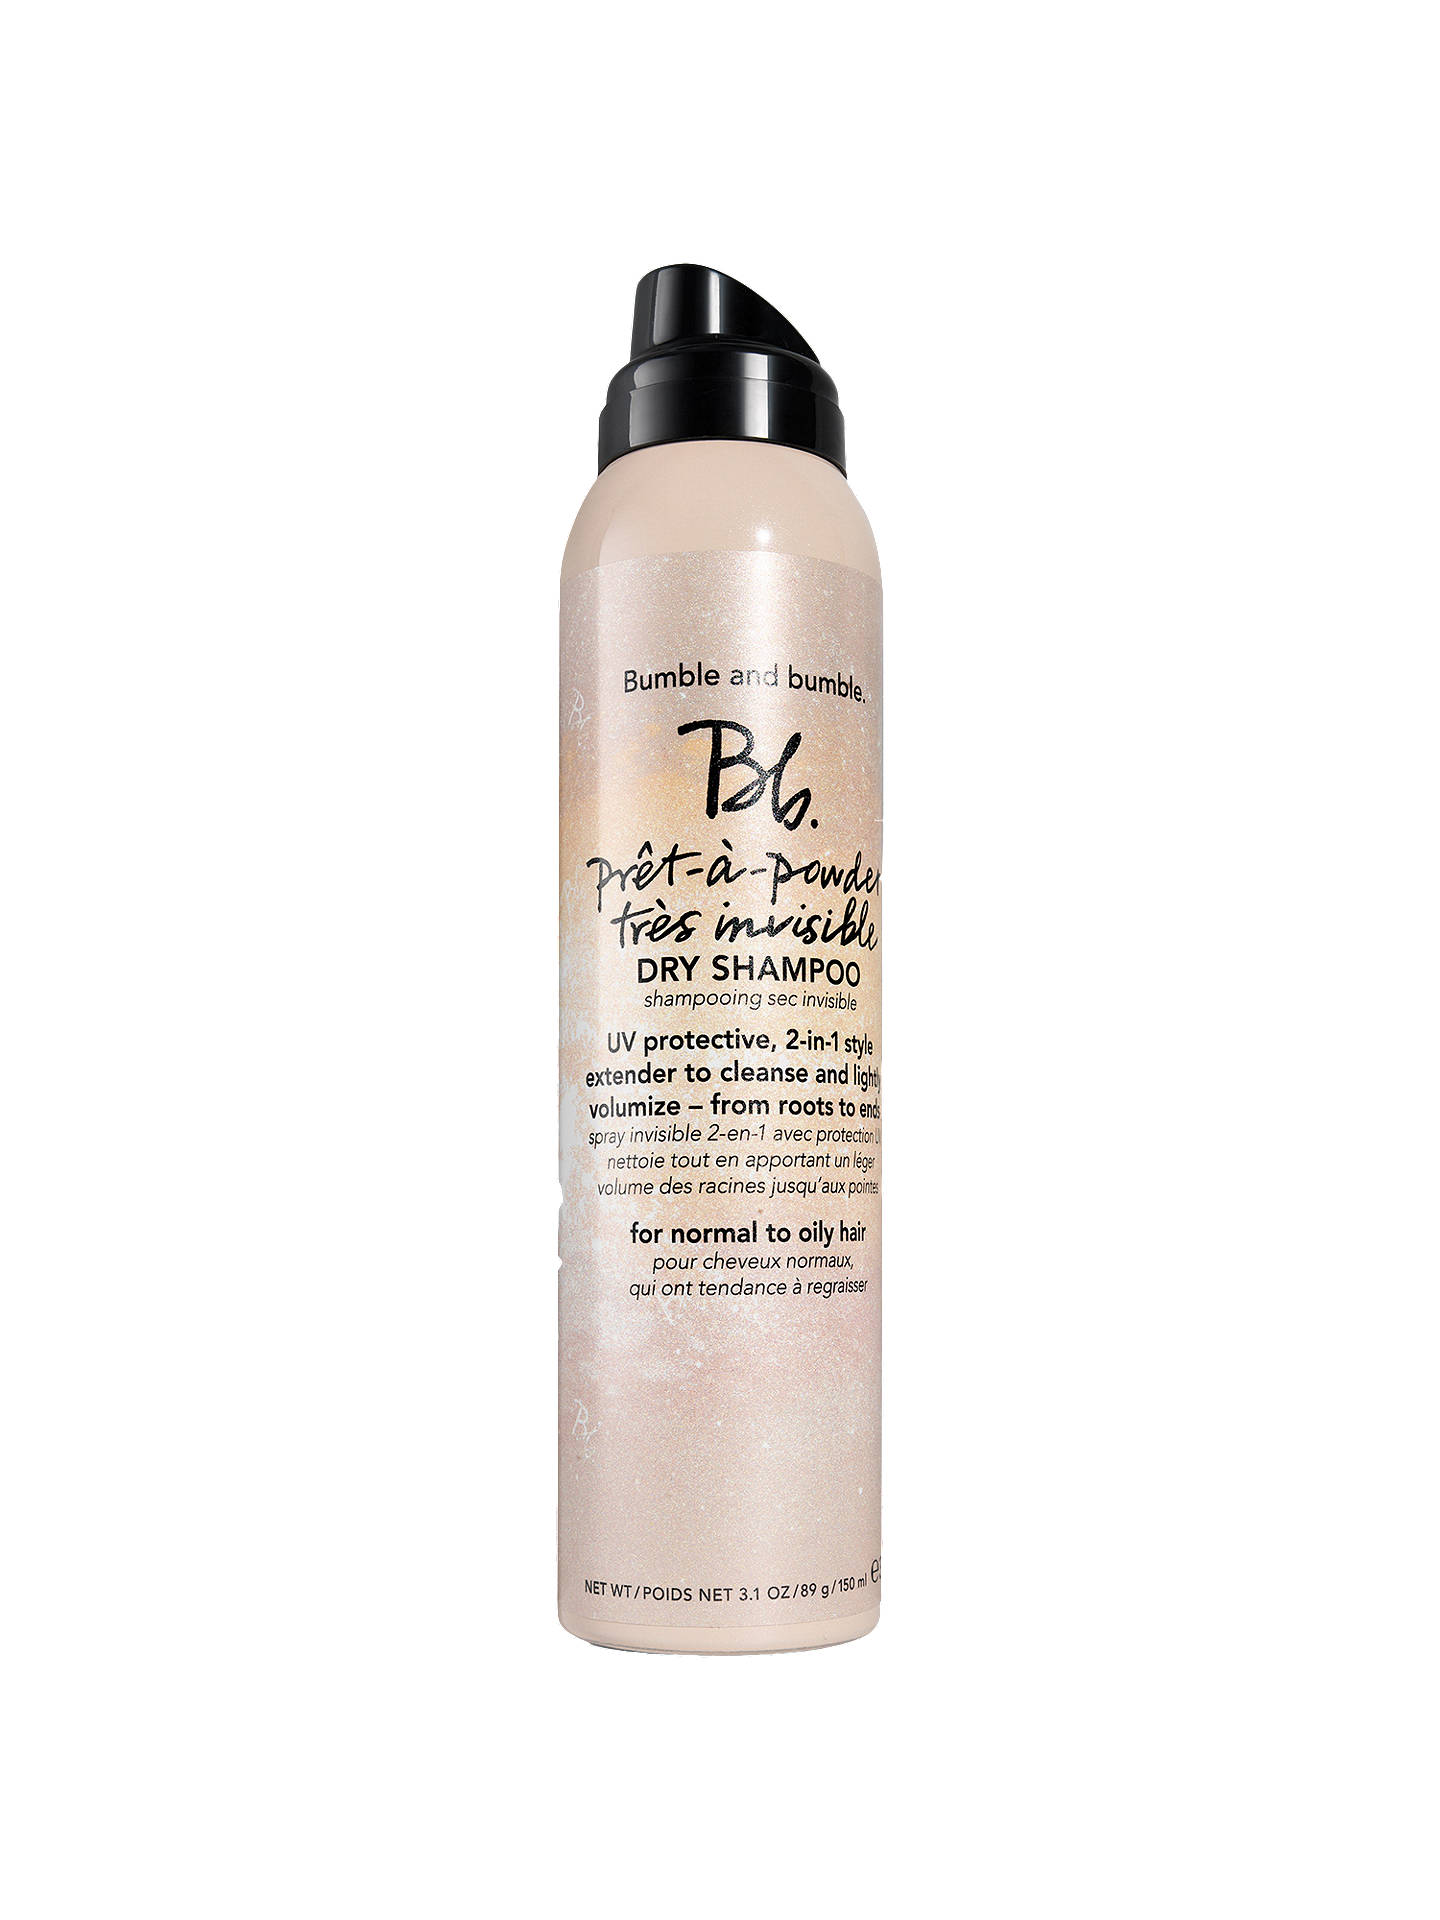 BuyBumble and bumble Pret A Powder Tres Invisible Dry Shampoo, 150ml Online at johnlewis.com